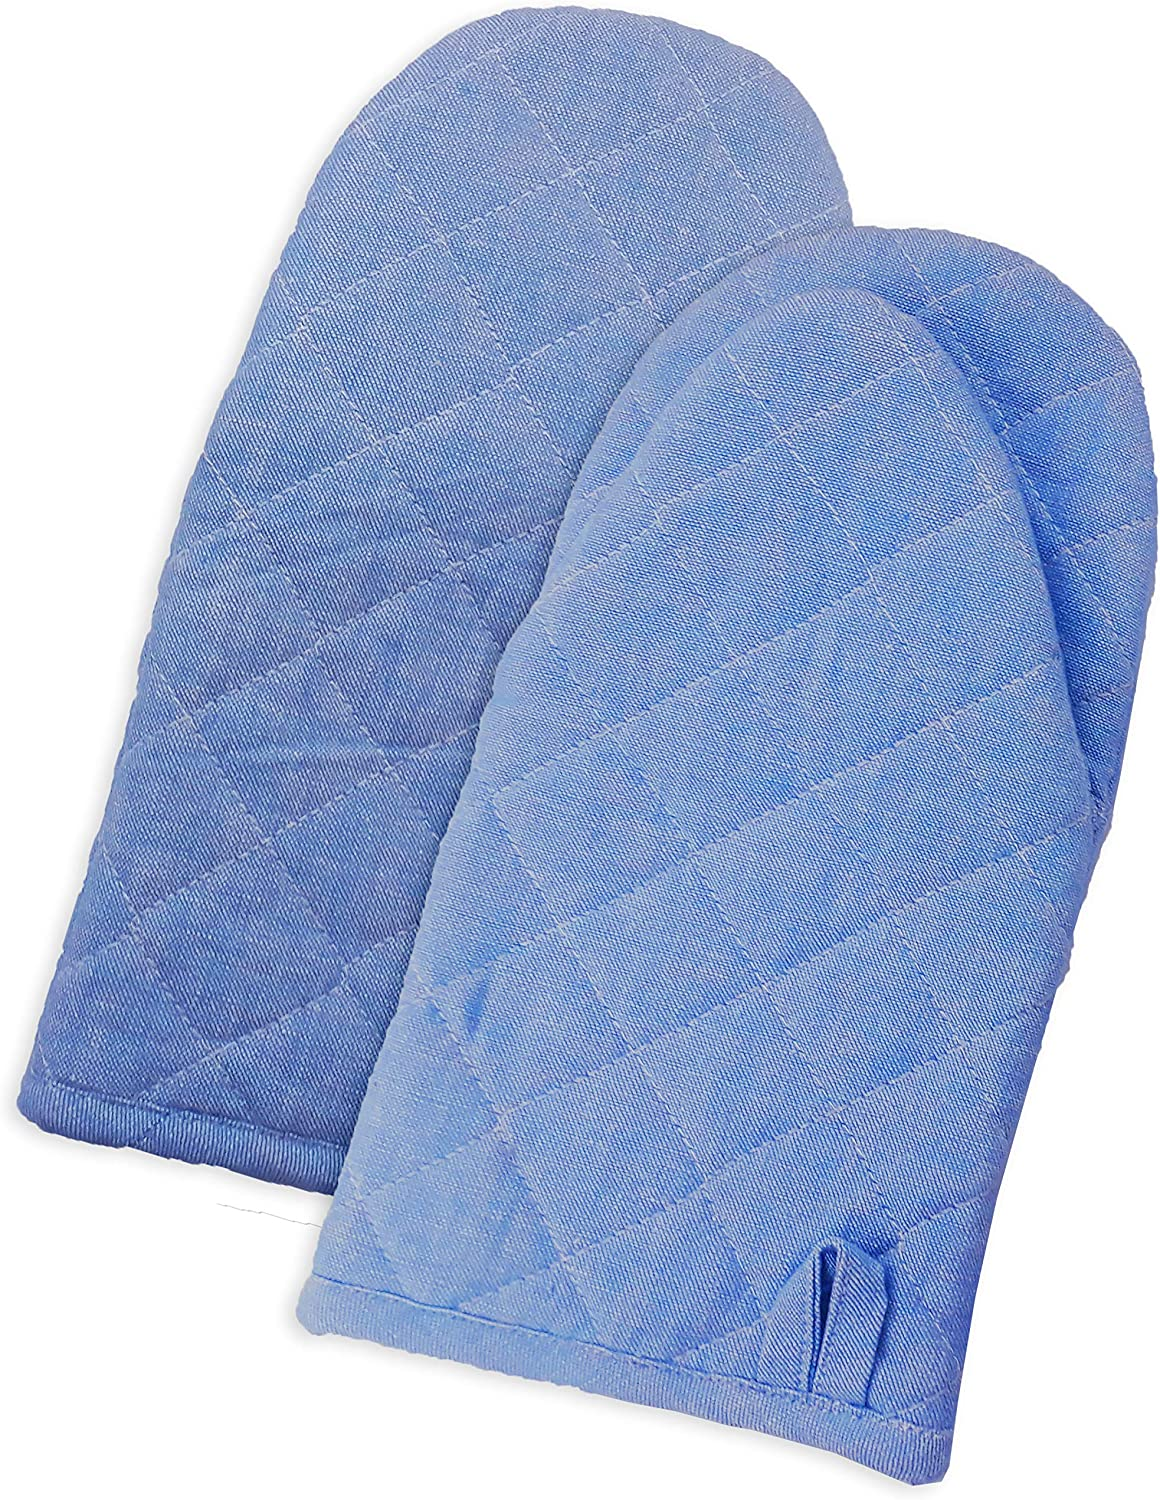 Set of 2 Oven Mitts, Country Blue Chambray, 100% Cotton Oven Mitts, Size 13x6 Inch, Heat Resistant for cooking and baking.